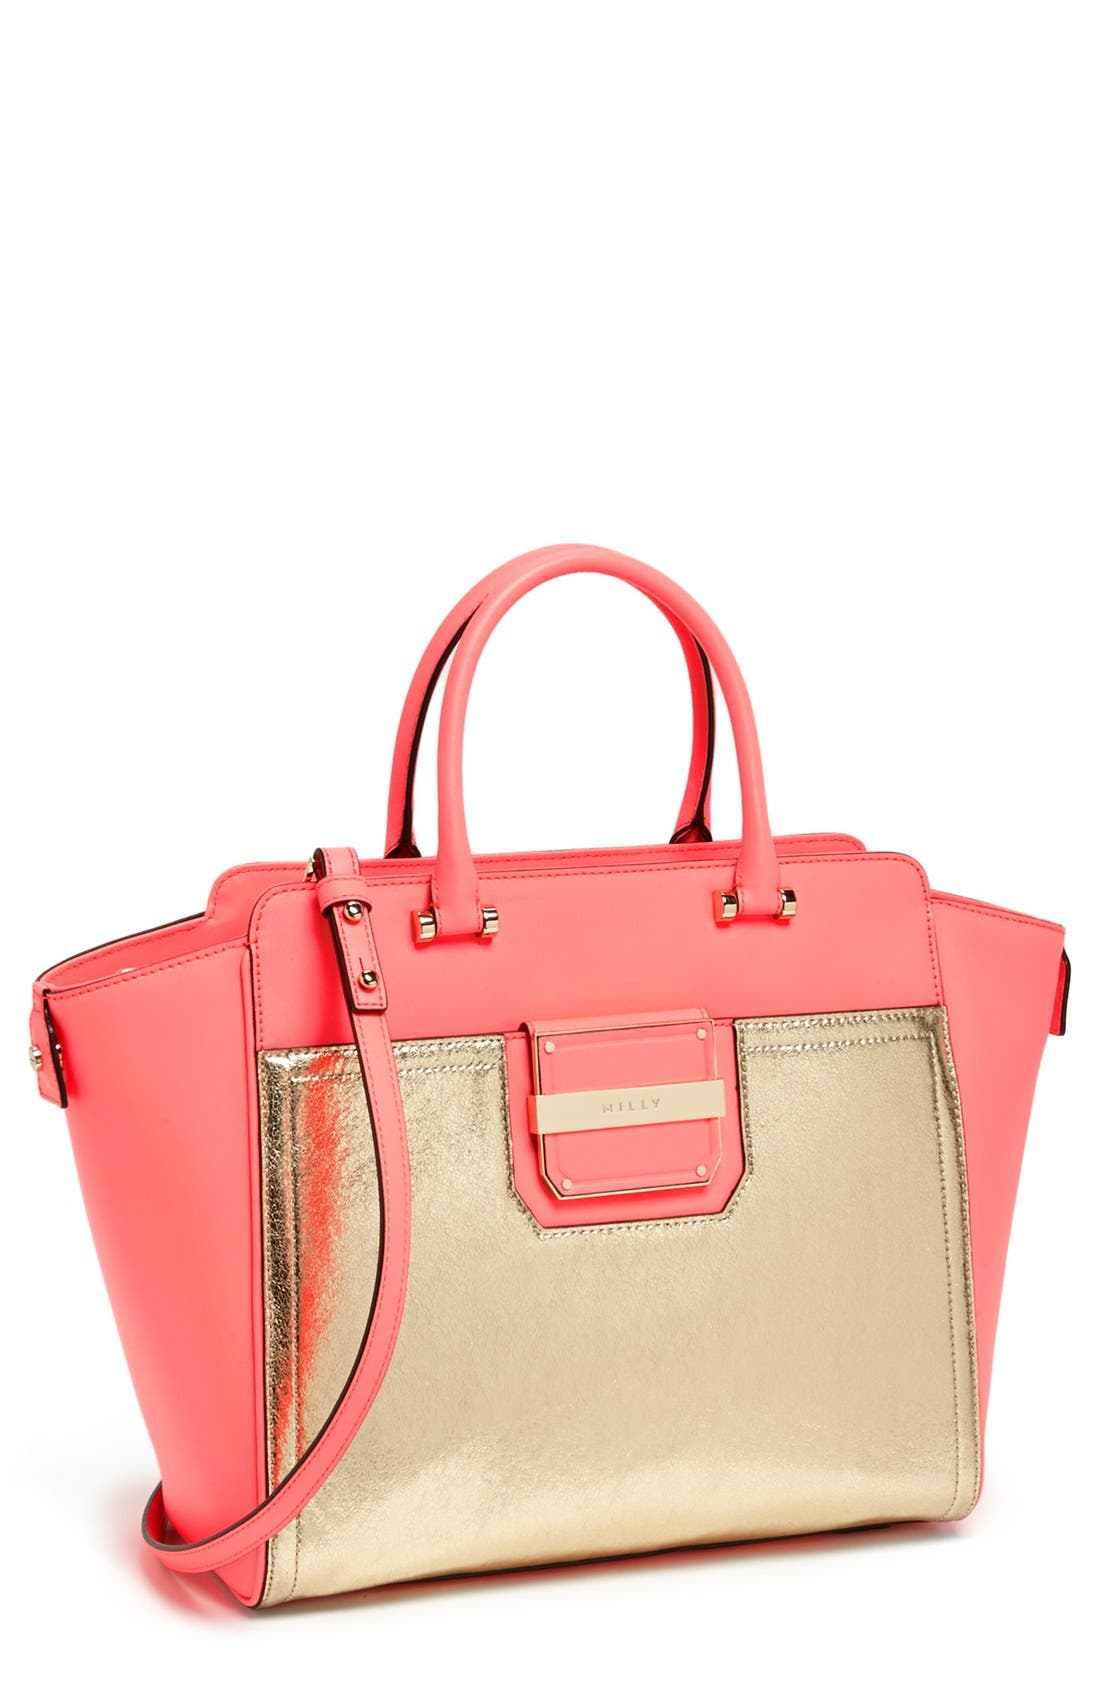 Alternate Image 1 Selected - Milly 'Colby' Metallic Leather Tote